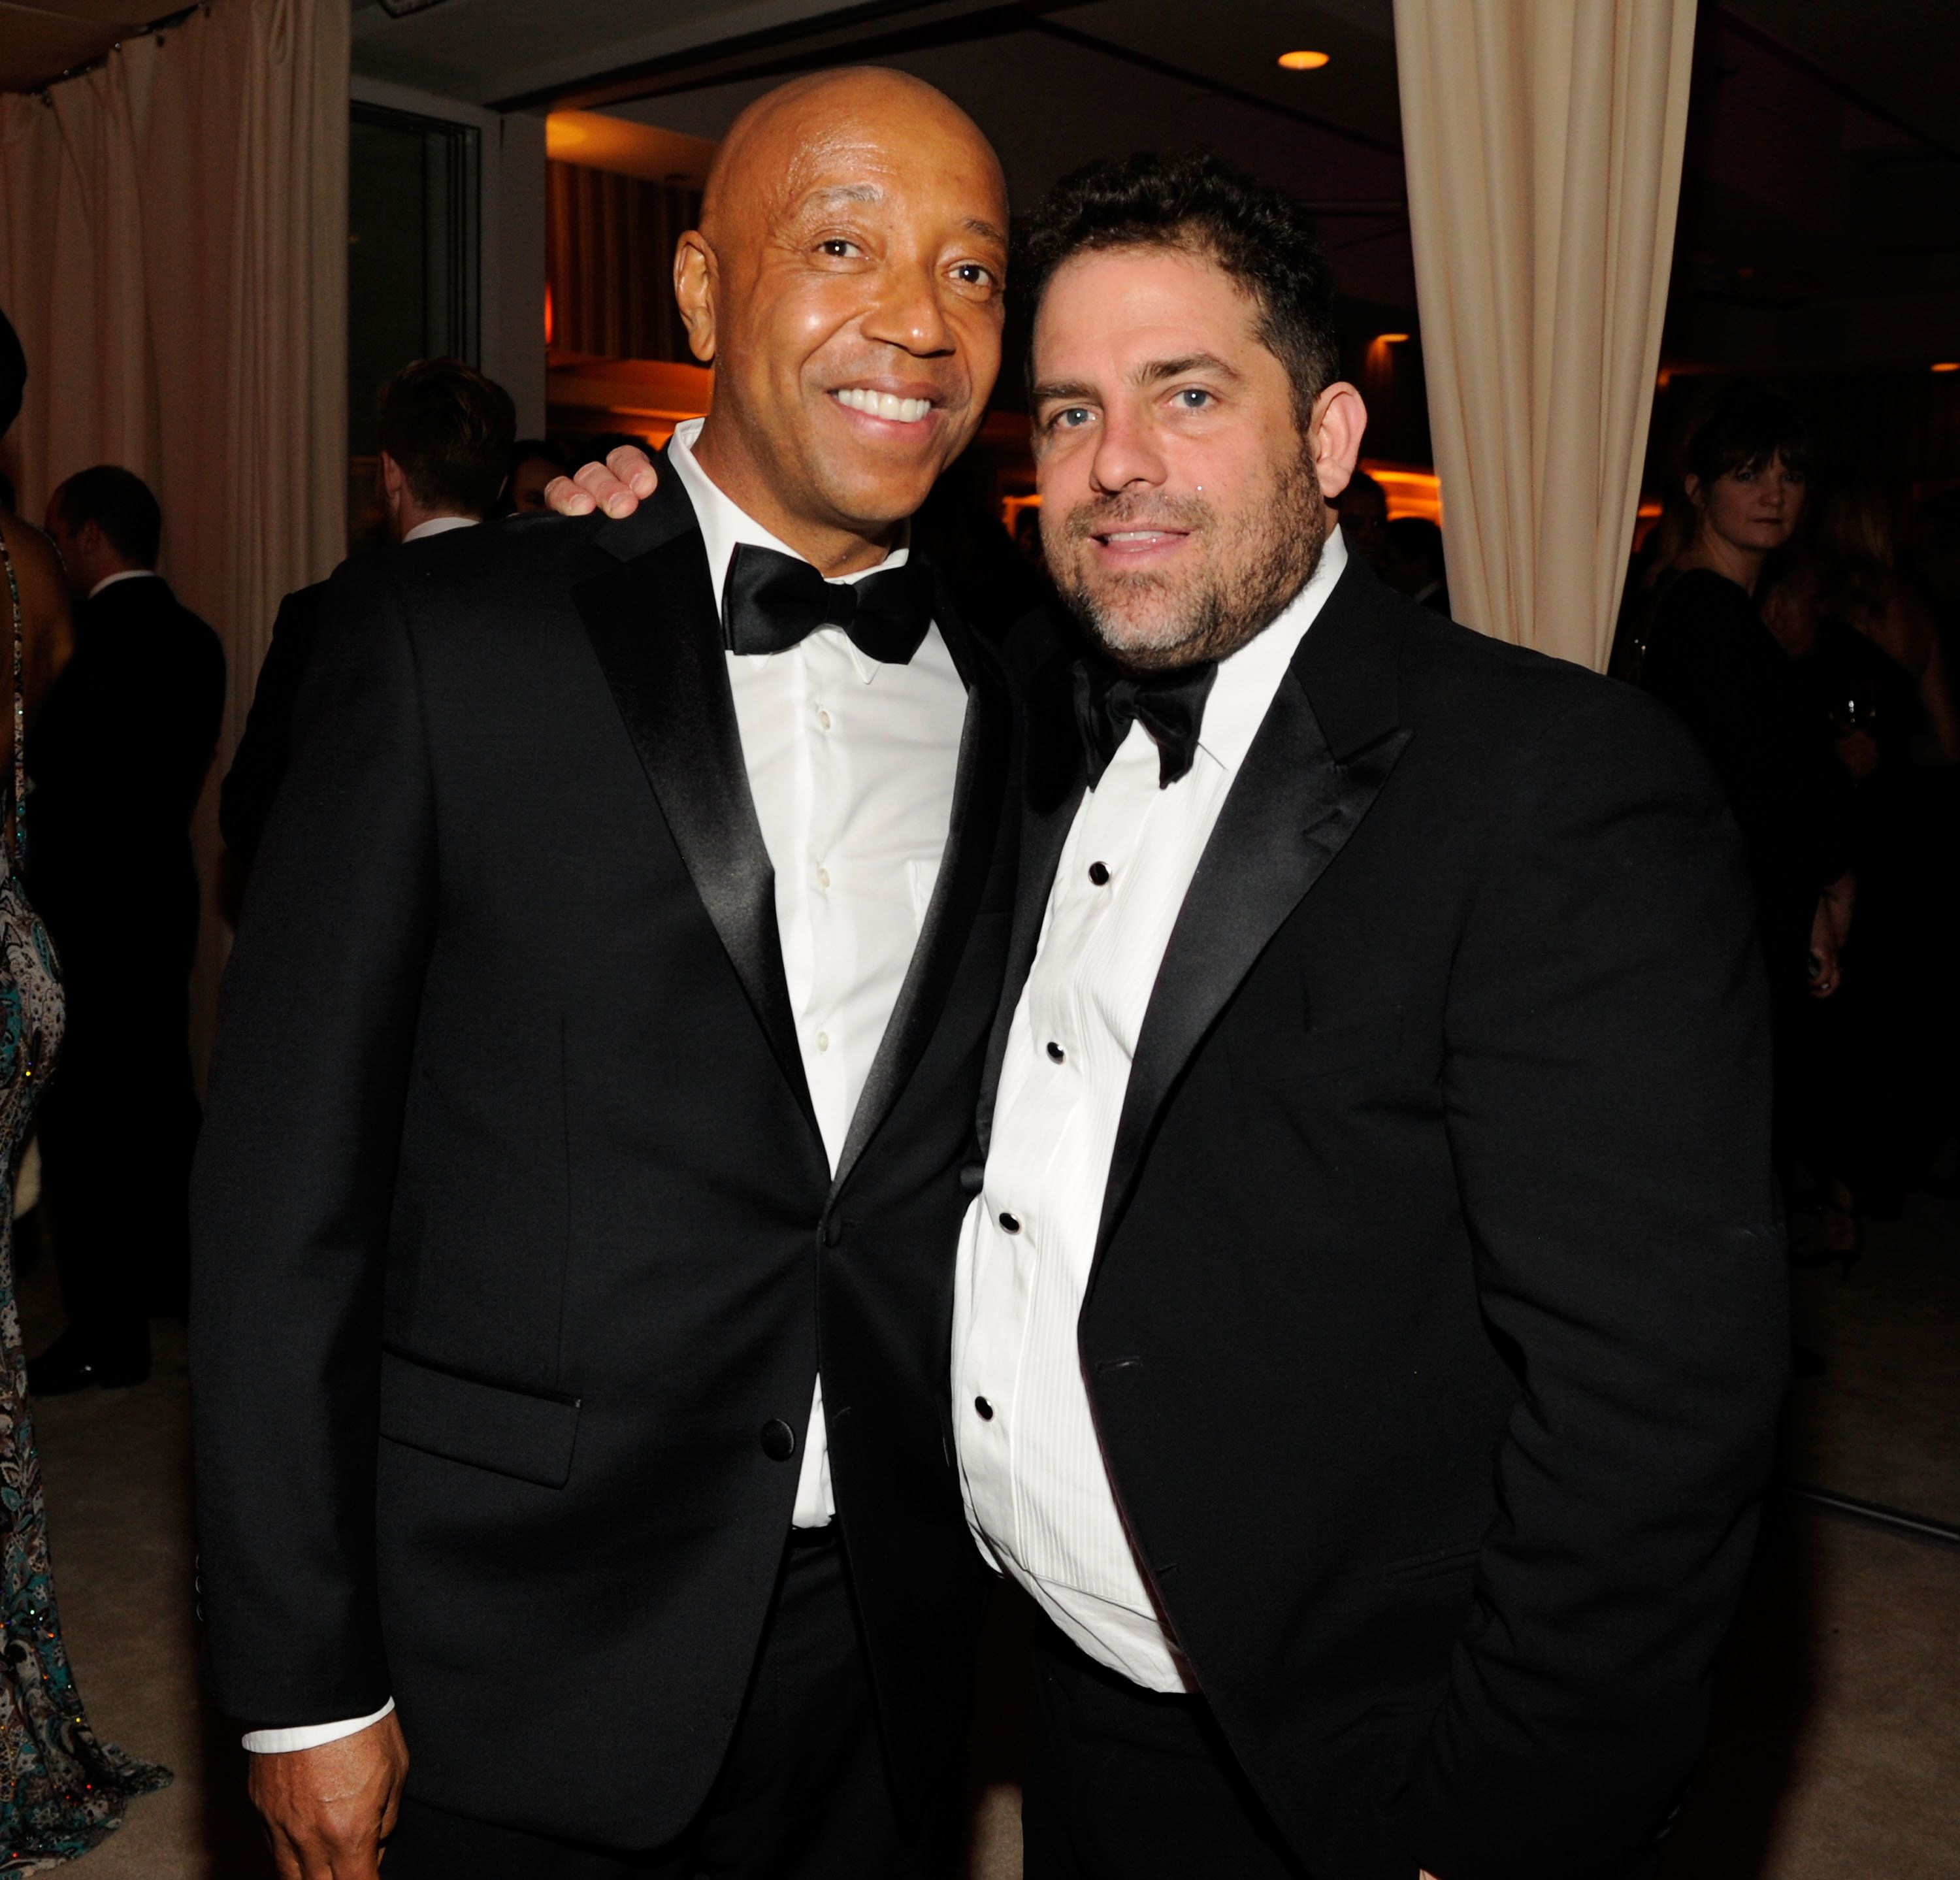 WEST HOLLYWOOD, CA - FEBRUARY 24:  (EXCLUSIVE ACCESS SPECIAL RATES APPLY; NO NORTH AMERICAN ON-AIR BROADCAST UNTIL FEBRUARY 28, 2013) Russell Simmons and Brett Ratner attends the 2013 Vanity Fair Oscar Party hosted by Graydon Carter at Sunset Tower on February 24, 2013 in West Hollywood, California.  (Photo by Kevin Mazur/VF13/WireImage)